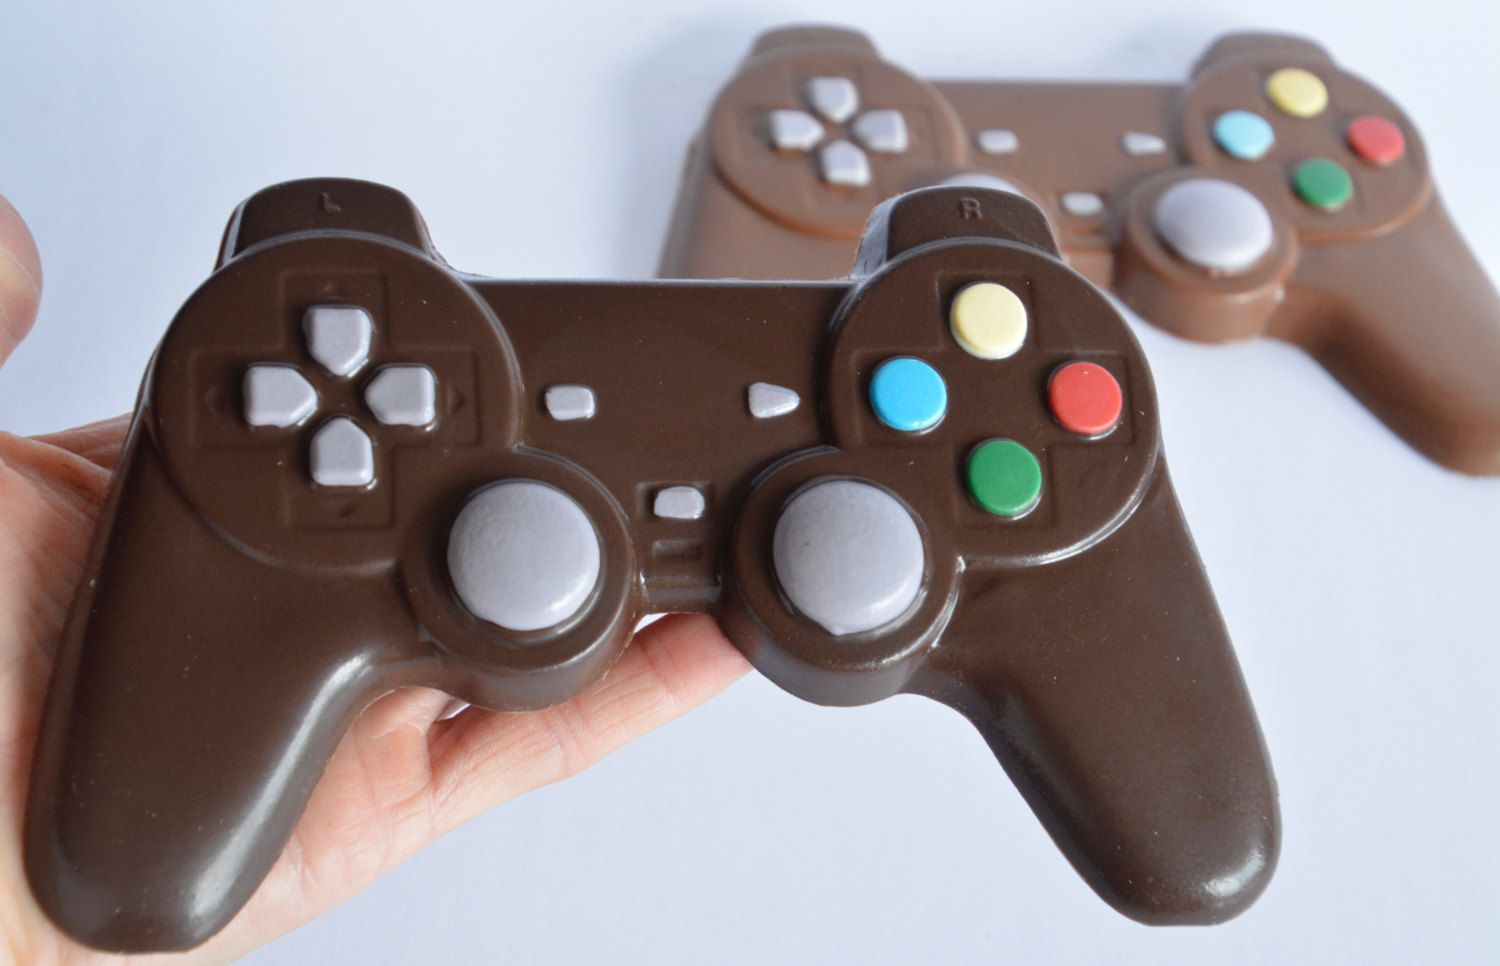 Chocolate Video Game Controller Chocolate Playstation Controller Chocolate Game Controller Chocolate Video Gamer Gift Wedding Favor Chocolate Videos Video Game Cakes Playstation Controller